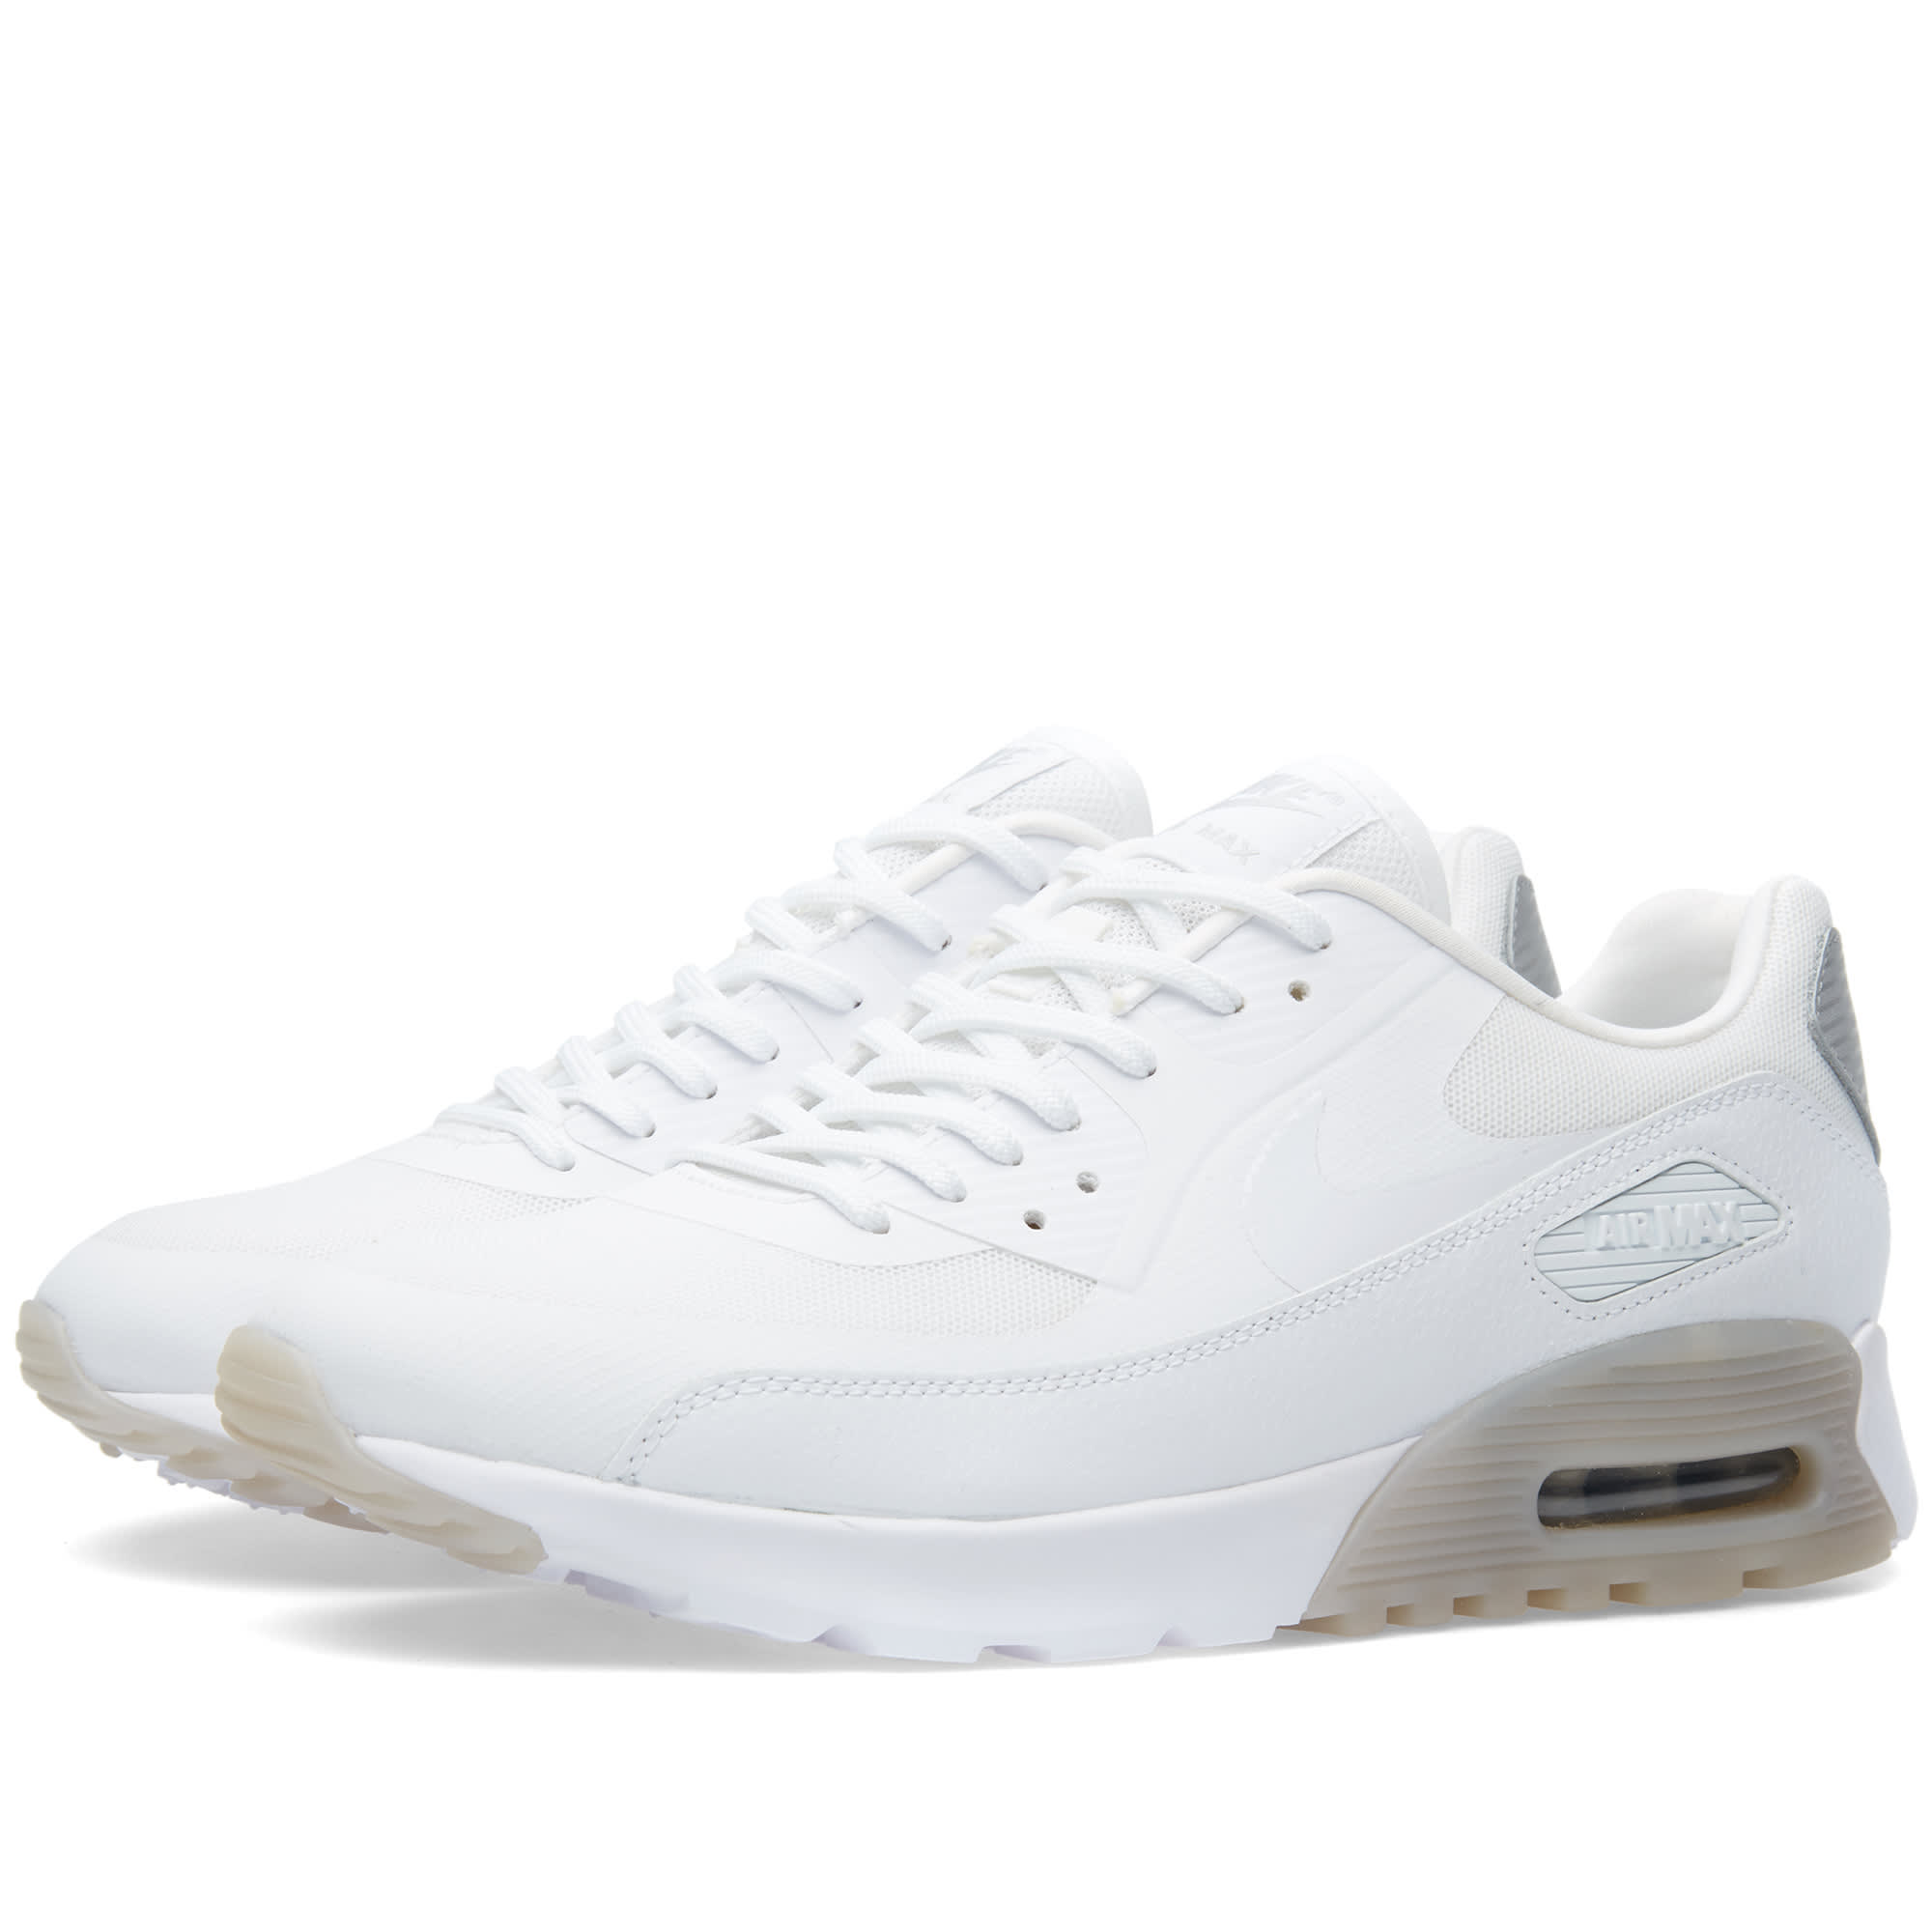 Nike W Air Max 90 Ultra Essential. White \\u0026amp; Wolf Grey .